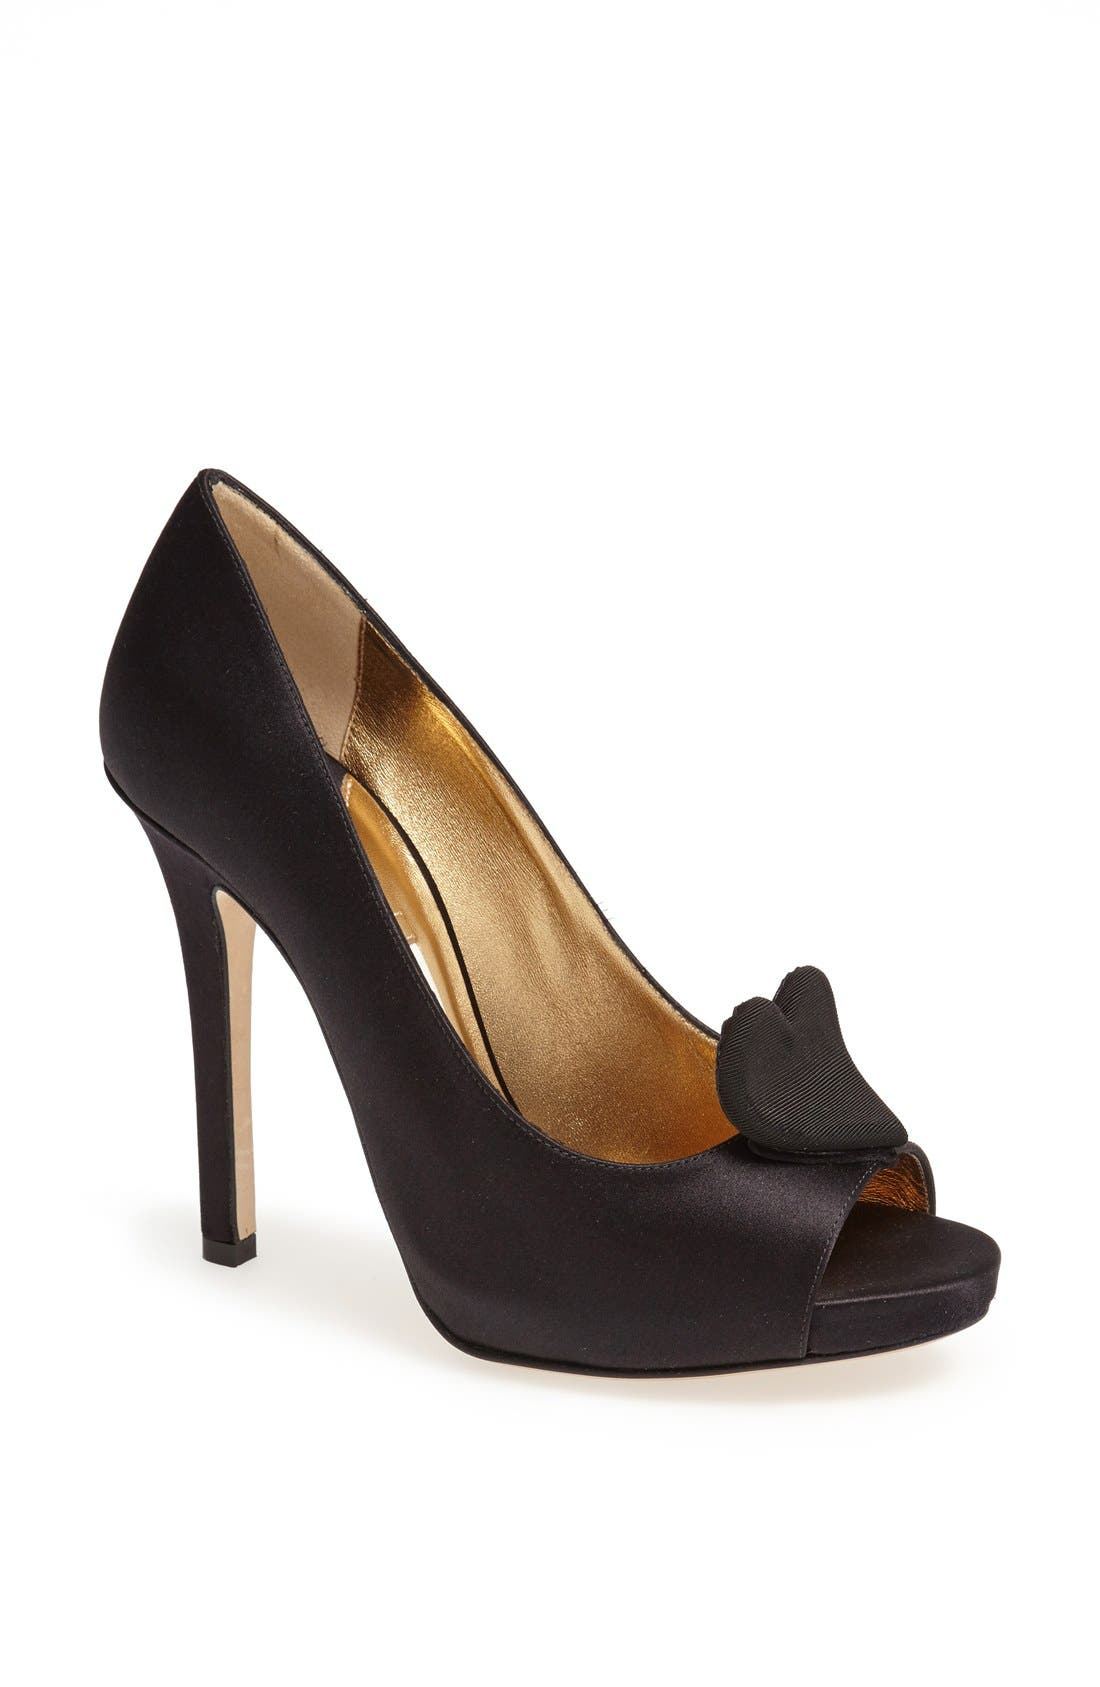 Main Image - kate spade new york 'collana' pump